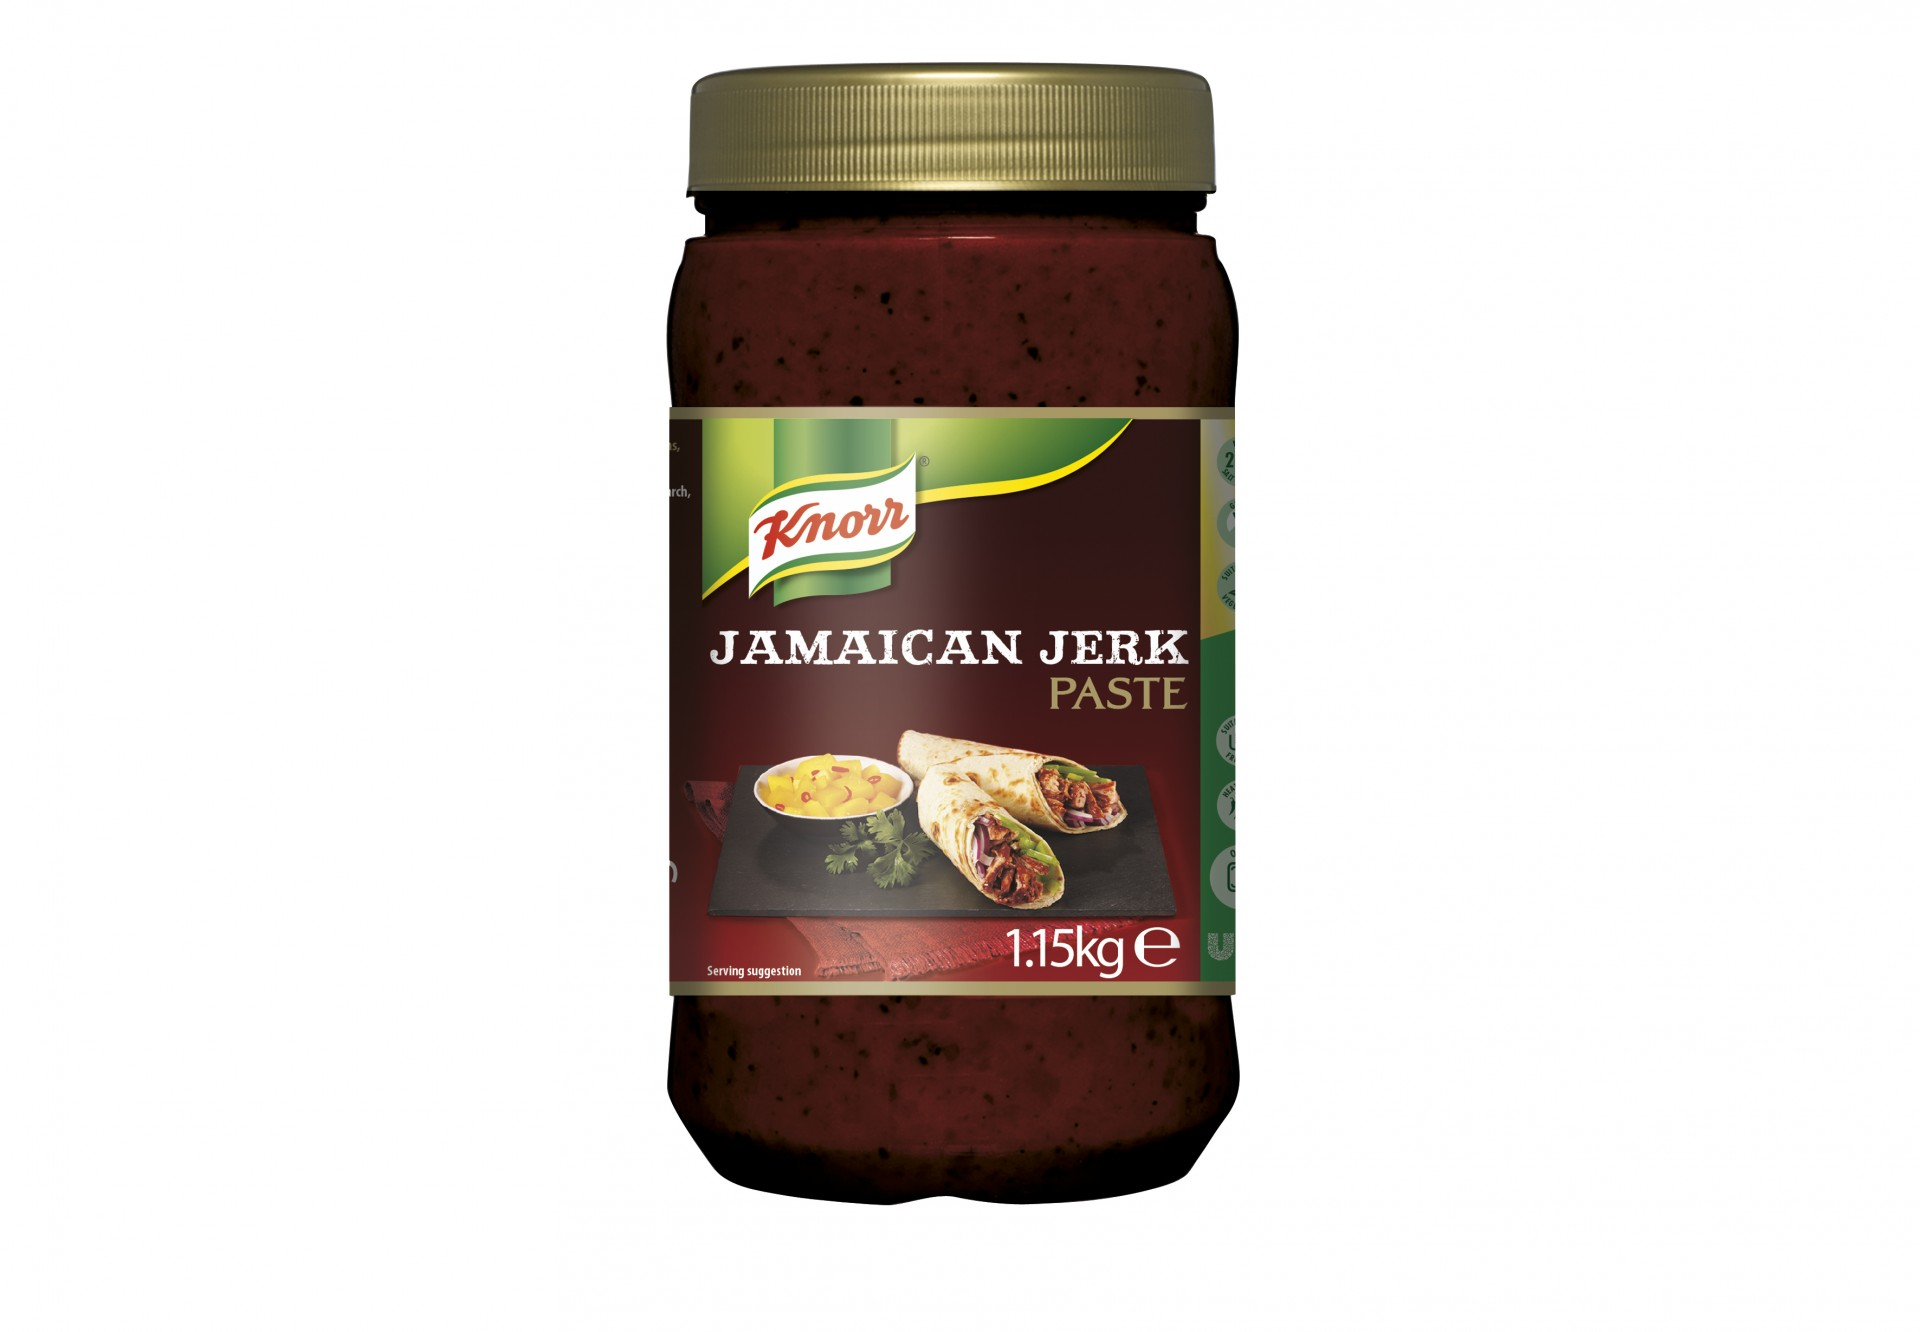 Jamaican Jerk Paste